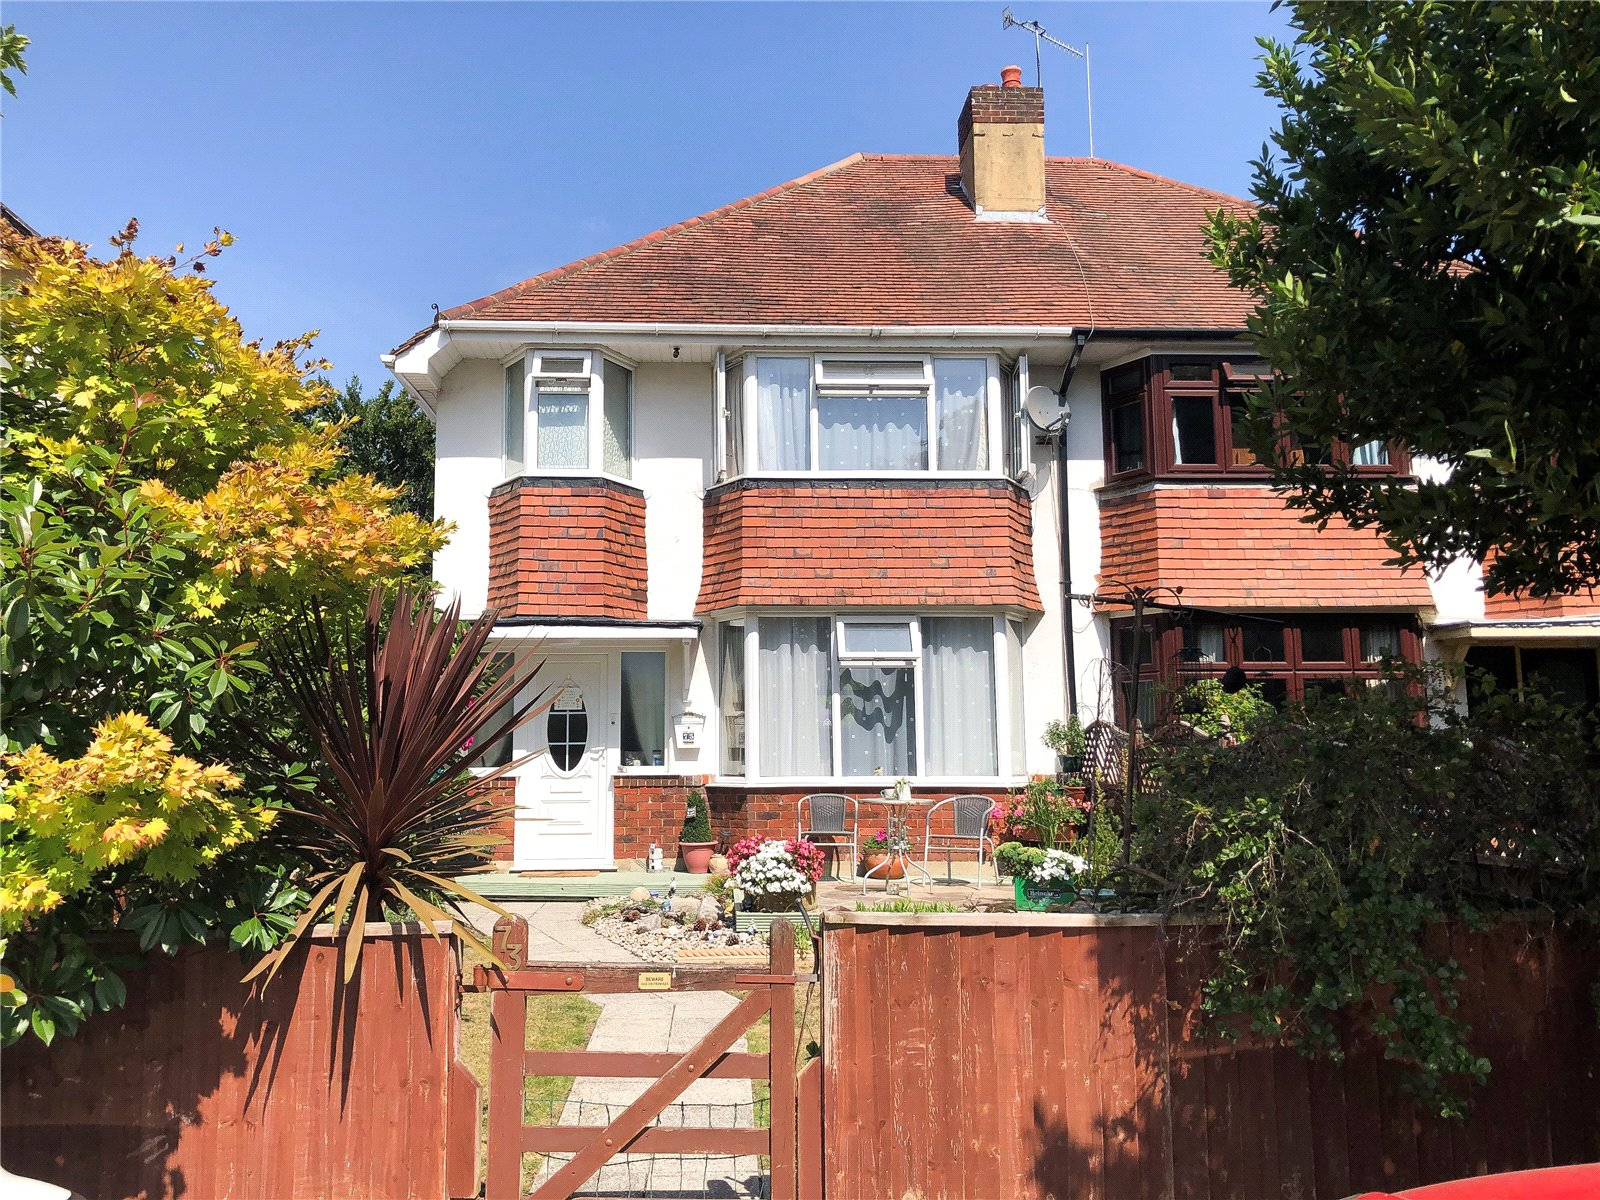 3 bed house for sale in Church Road, Lower Parkstone - Property Image 1